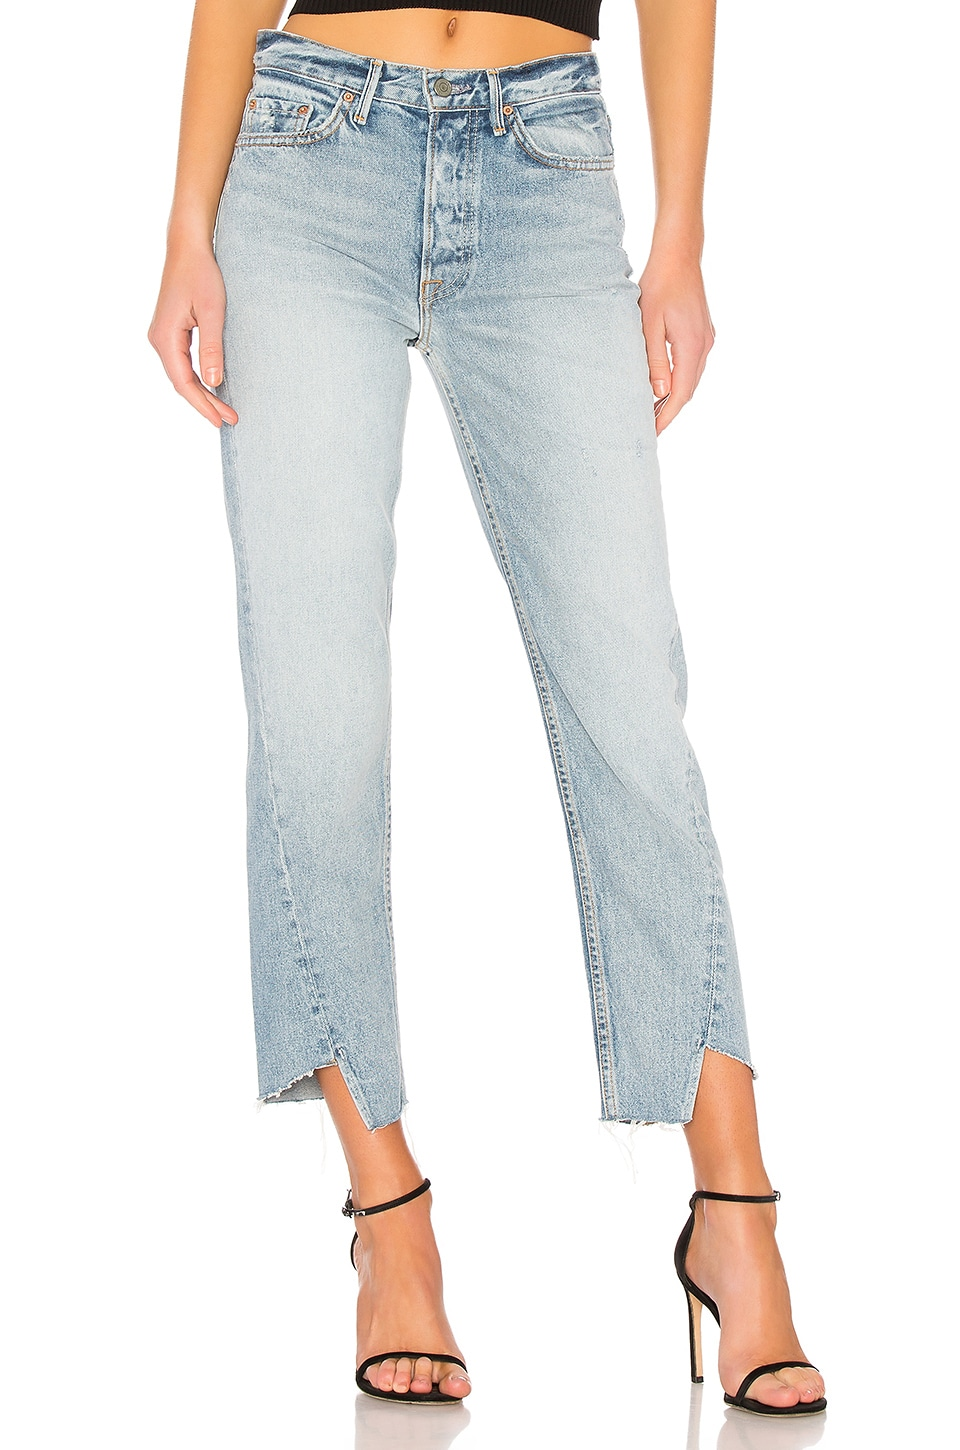 GRLFRND Carmen High-Rise Straight Leg Jean in Time Warp